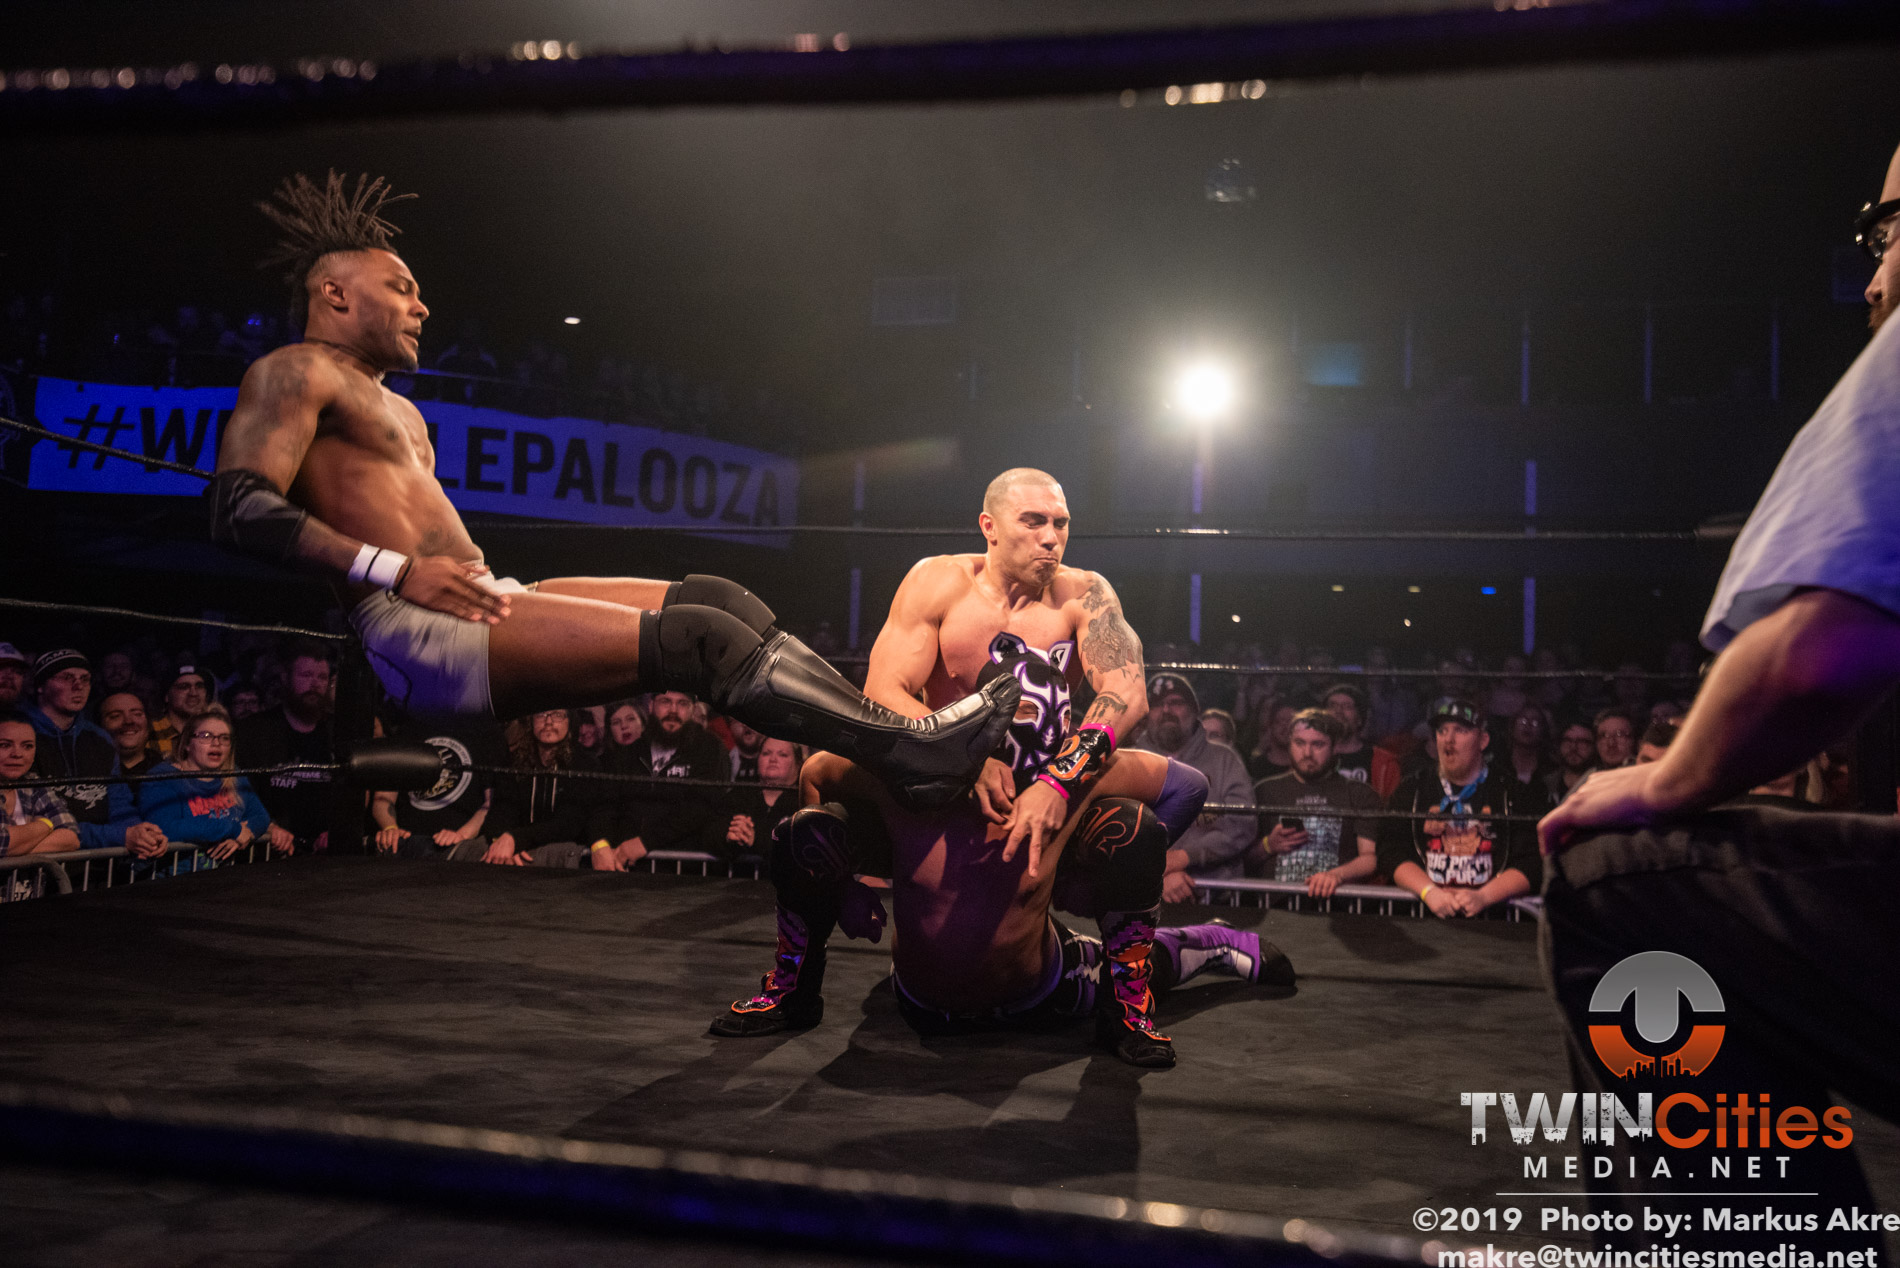 Wrestlepalooza - Match 6-9